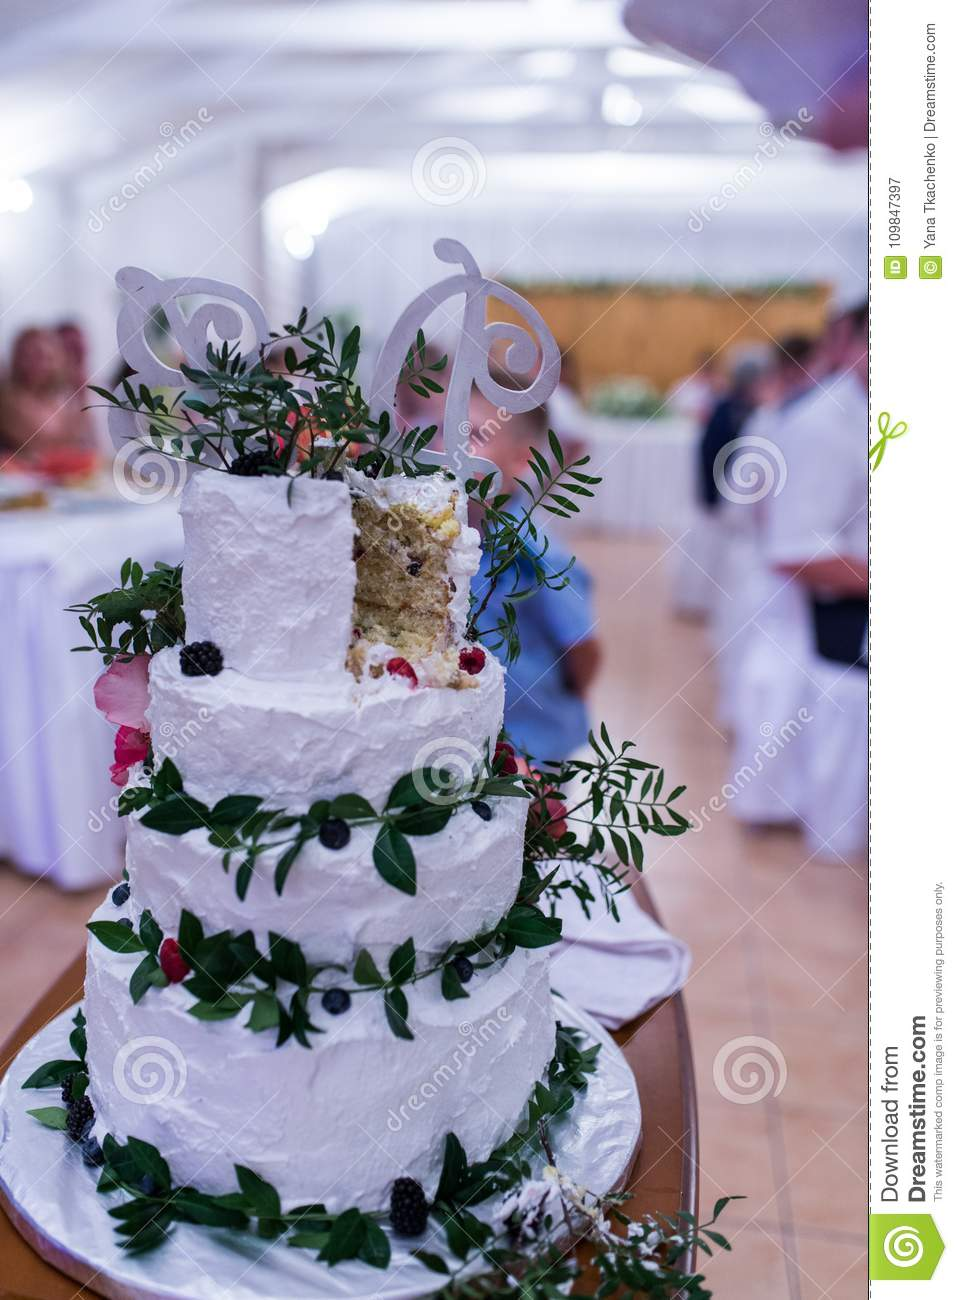 Beautiful Four Tiered White Wedding Cake With Pink Flowers And